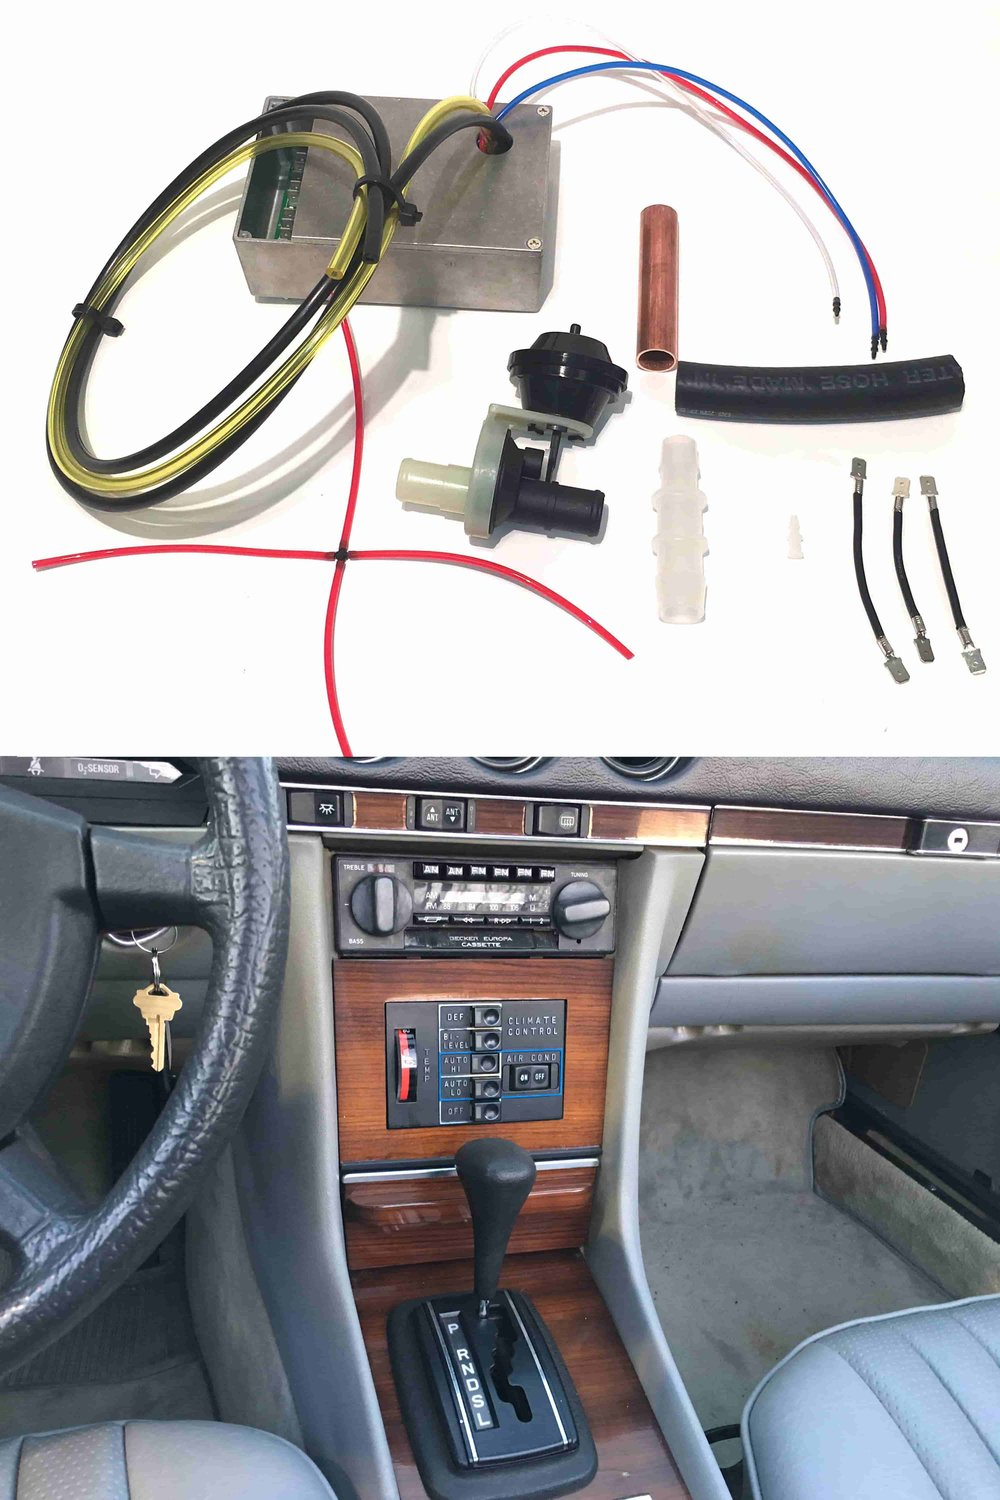 """Automatic Climate Control II Update Kit - If your w123, w116, or r107 chassis Mercedes suffers from the poorly-designed """"Automatic Climate Control II System,"""" we have exactly what you need.We created an easy-to-install kit that uses medical-grade electronic solenoid valves to replace the automatic climate control servo and amplifier. In under an hour, you can install our kit to restore your climate control system to its original functionality, without the headache of another failure-prone servo from Mercedes. The kit even preserves the original cabin control panel, so you cannot tell it has been installed!Our kit is less than half the cost of a replacement servo and amplifier or competitors' upgrade kits."""